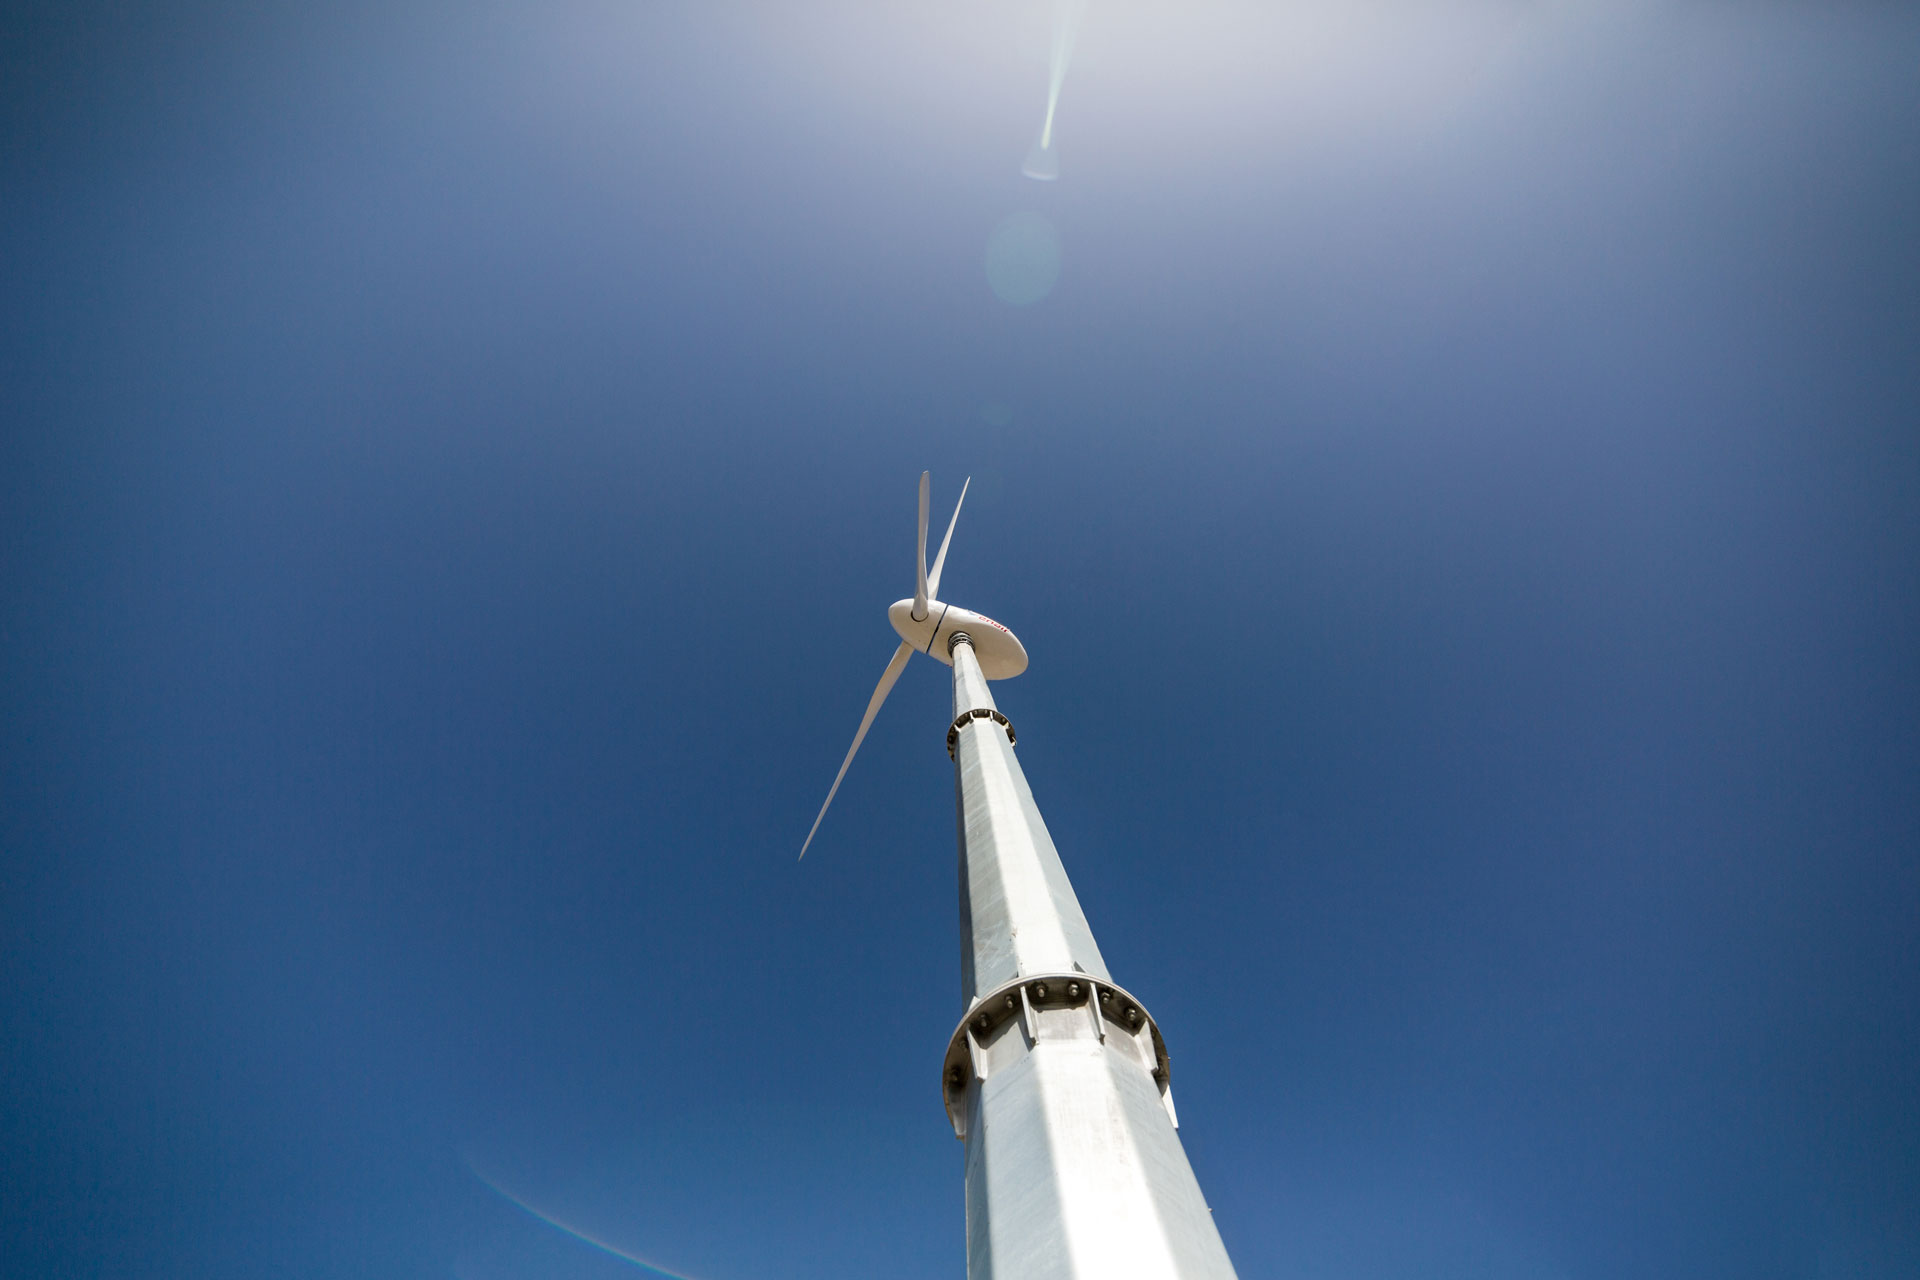 Small Wind Turbine E200L - The latest technology